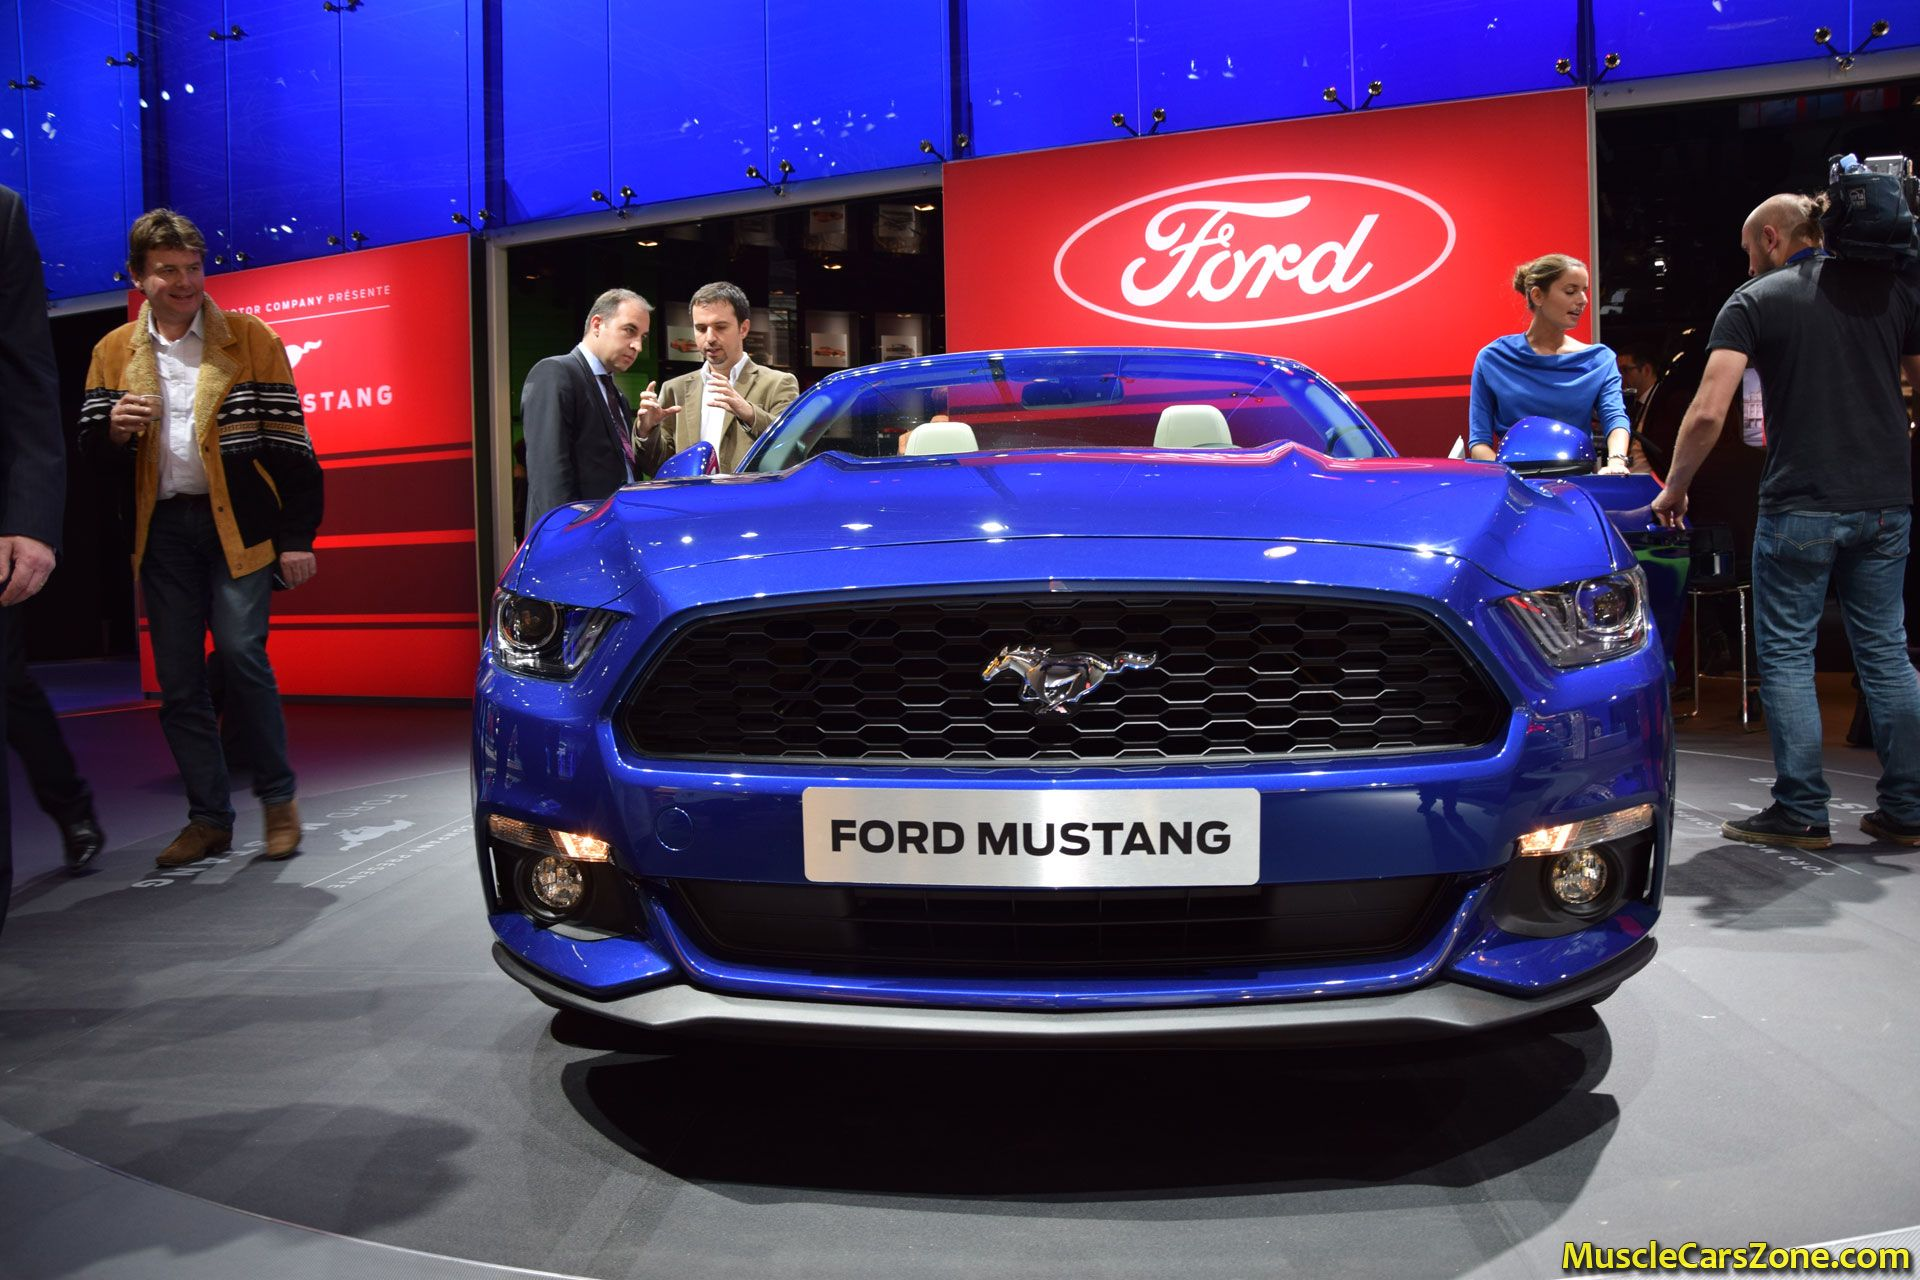 2015 ford mustang convertible 2014 paris motor show 3 - Ford Mustang 2015 Blue